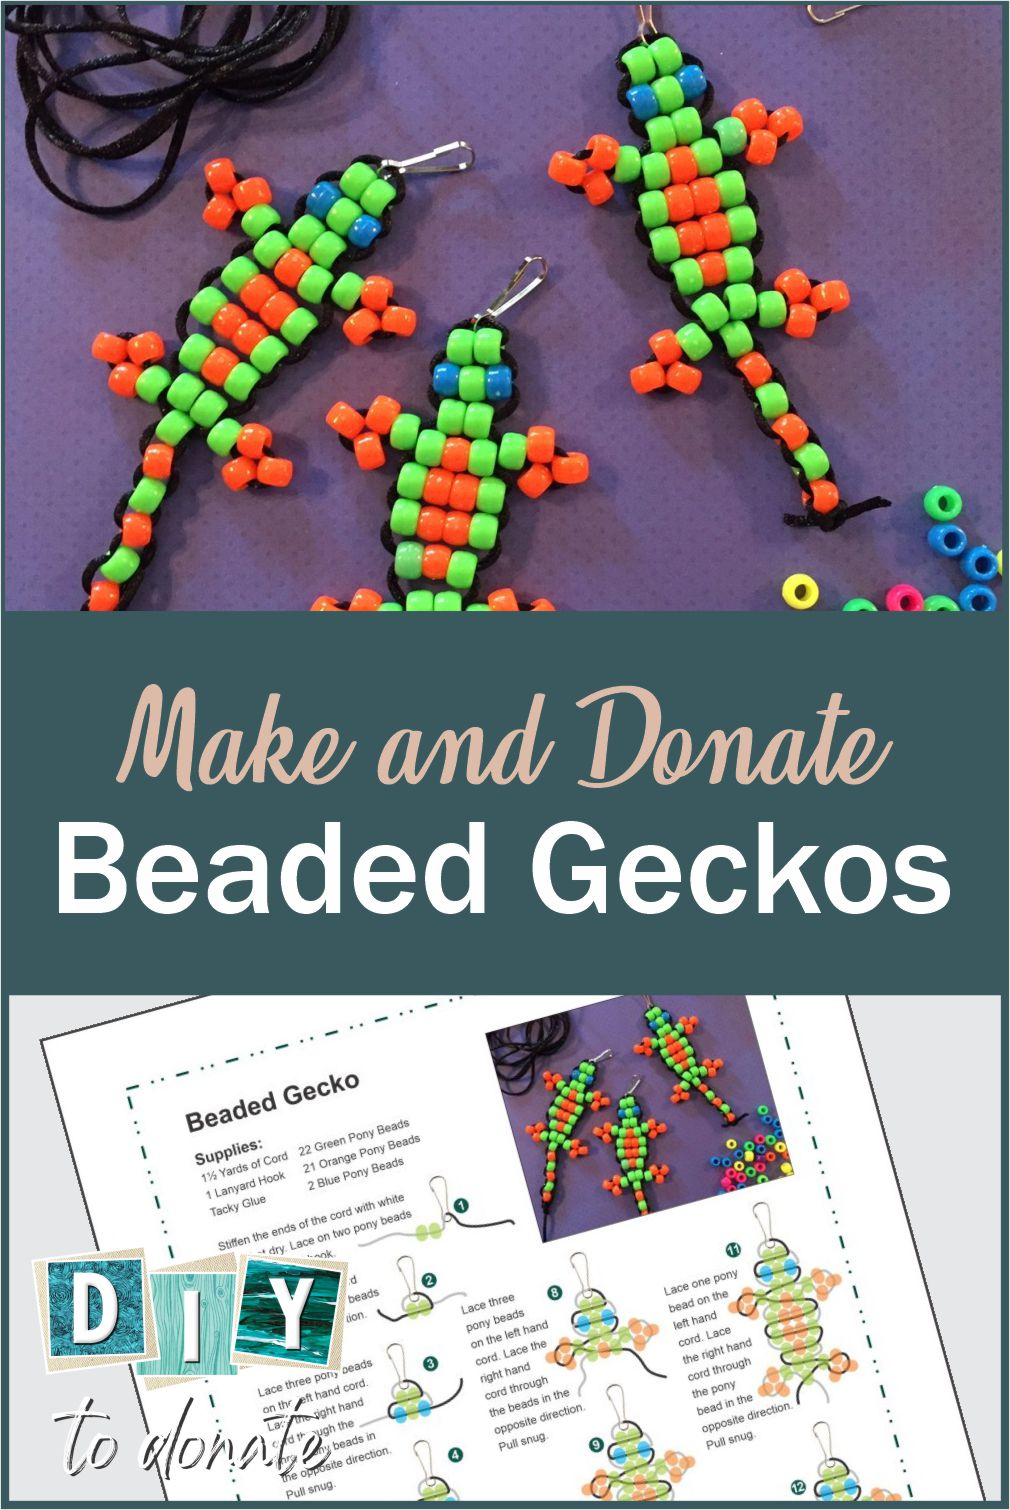 Easy, step-by-step illustrated instructions for making beaded geckos and where your kids can donate them to other children. #diytodonate #giveback #service #cummunityservice #makingfriends #geckos #beadedcraft #beads #crafts #children #kids